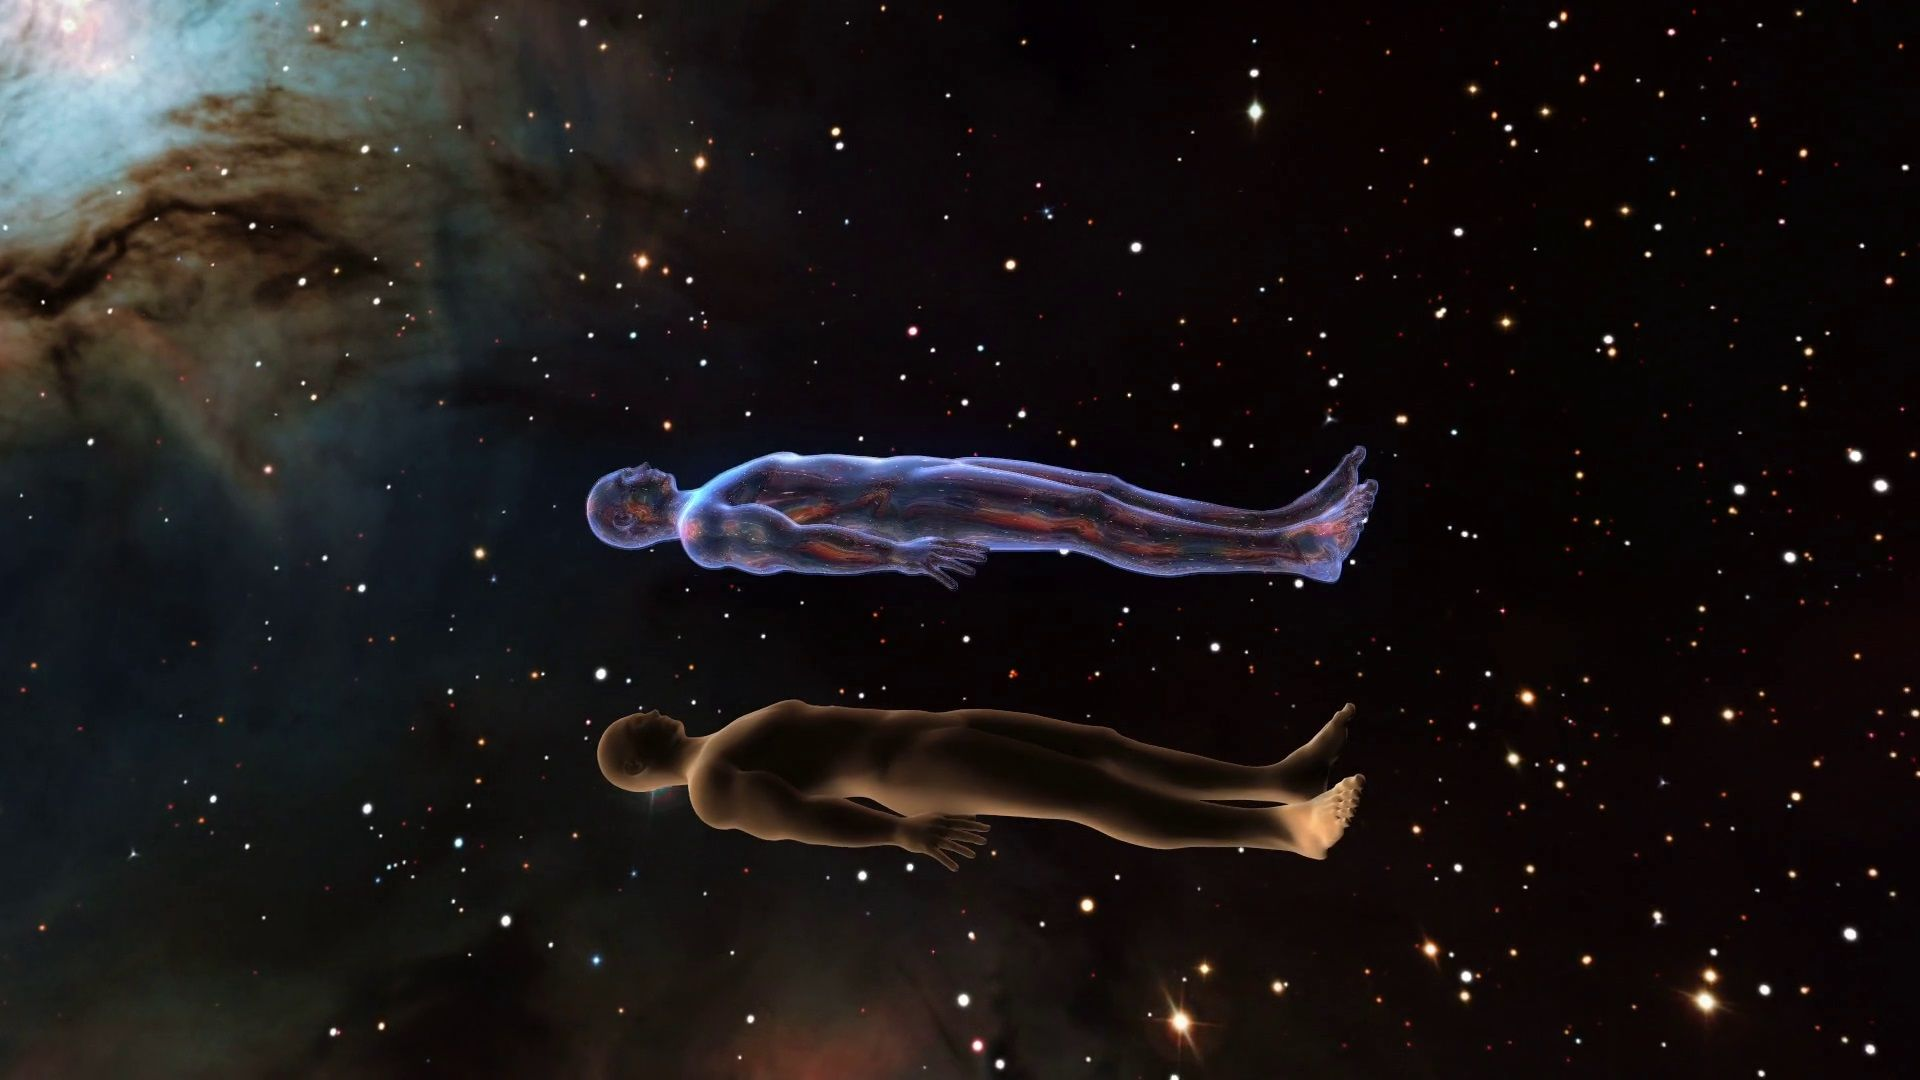 Reincarnation: Were you here before?